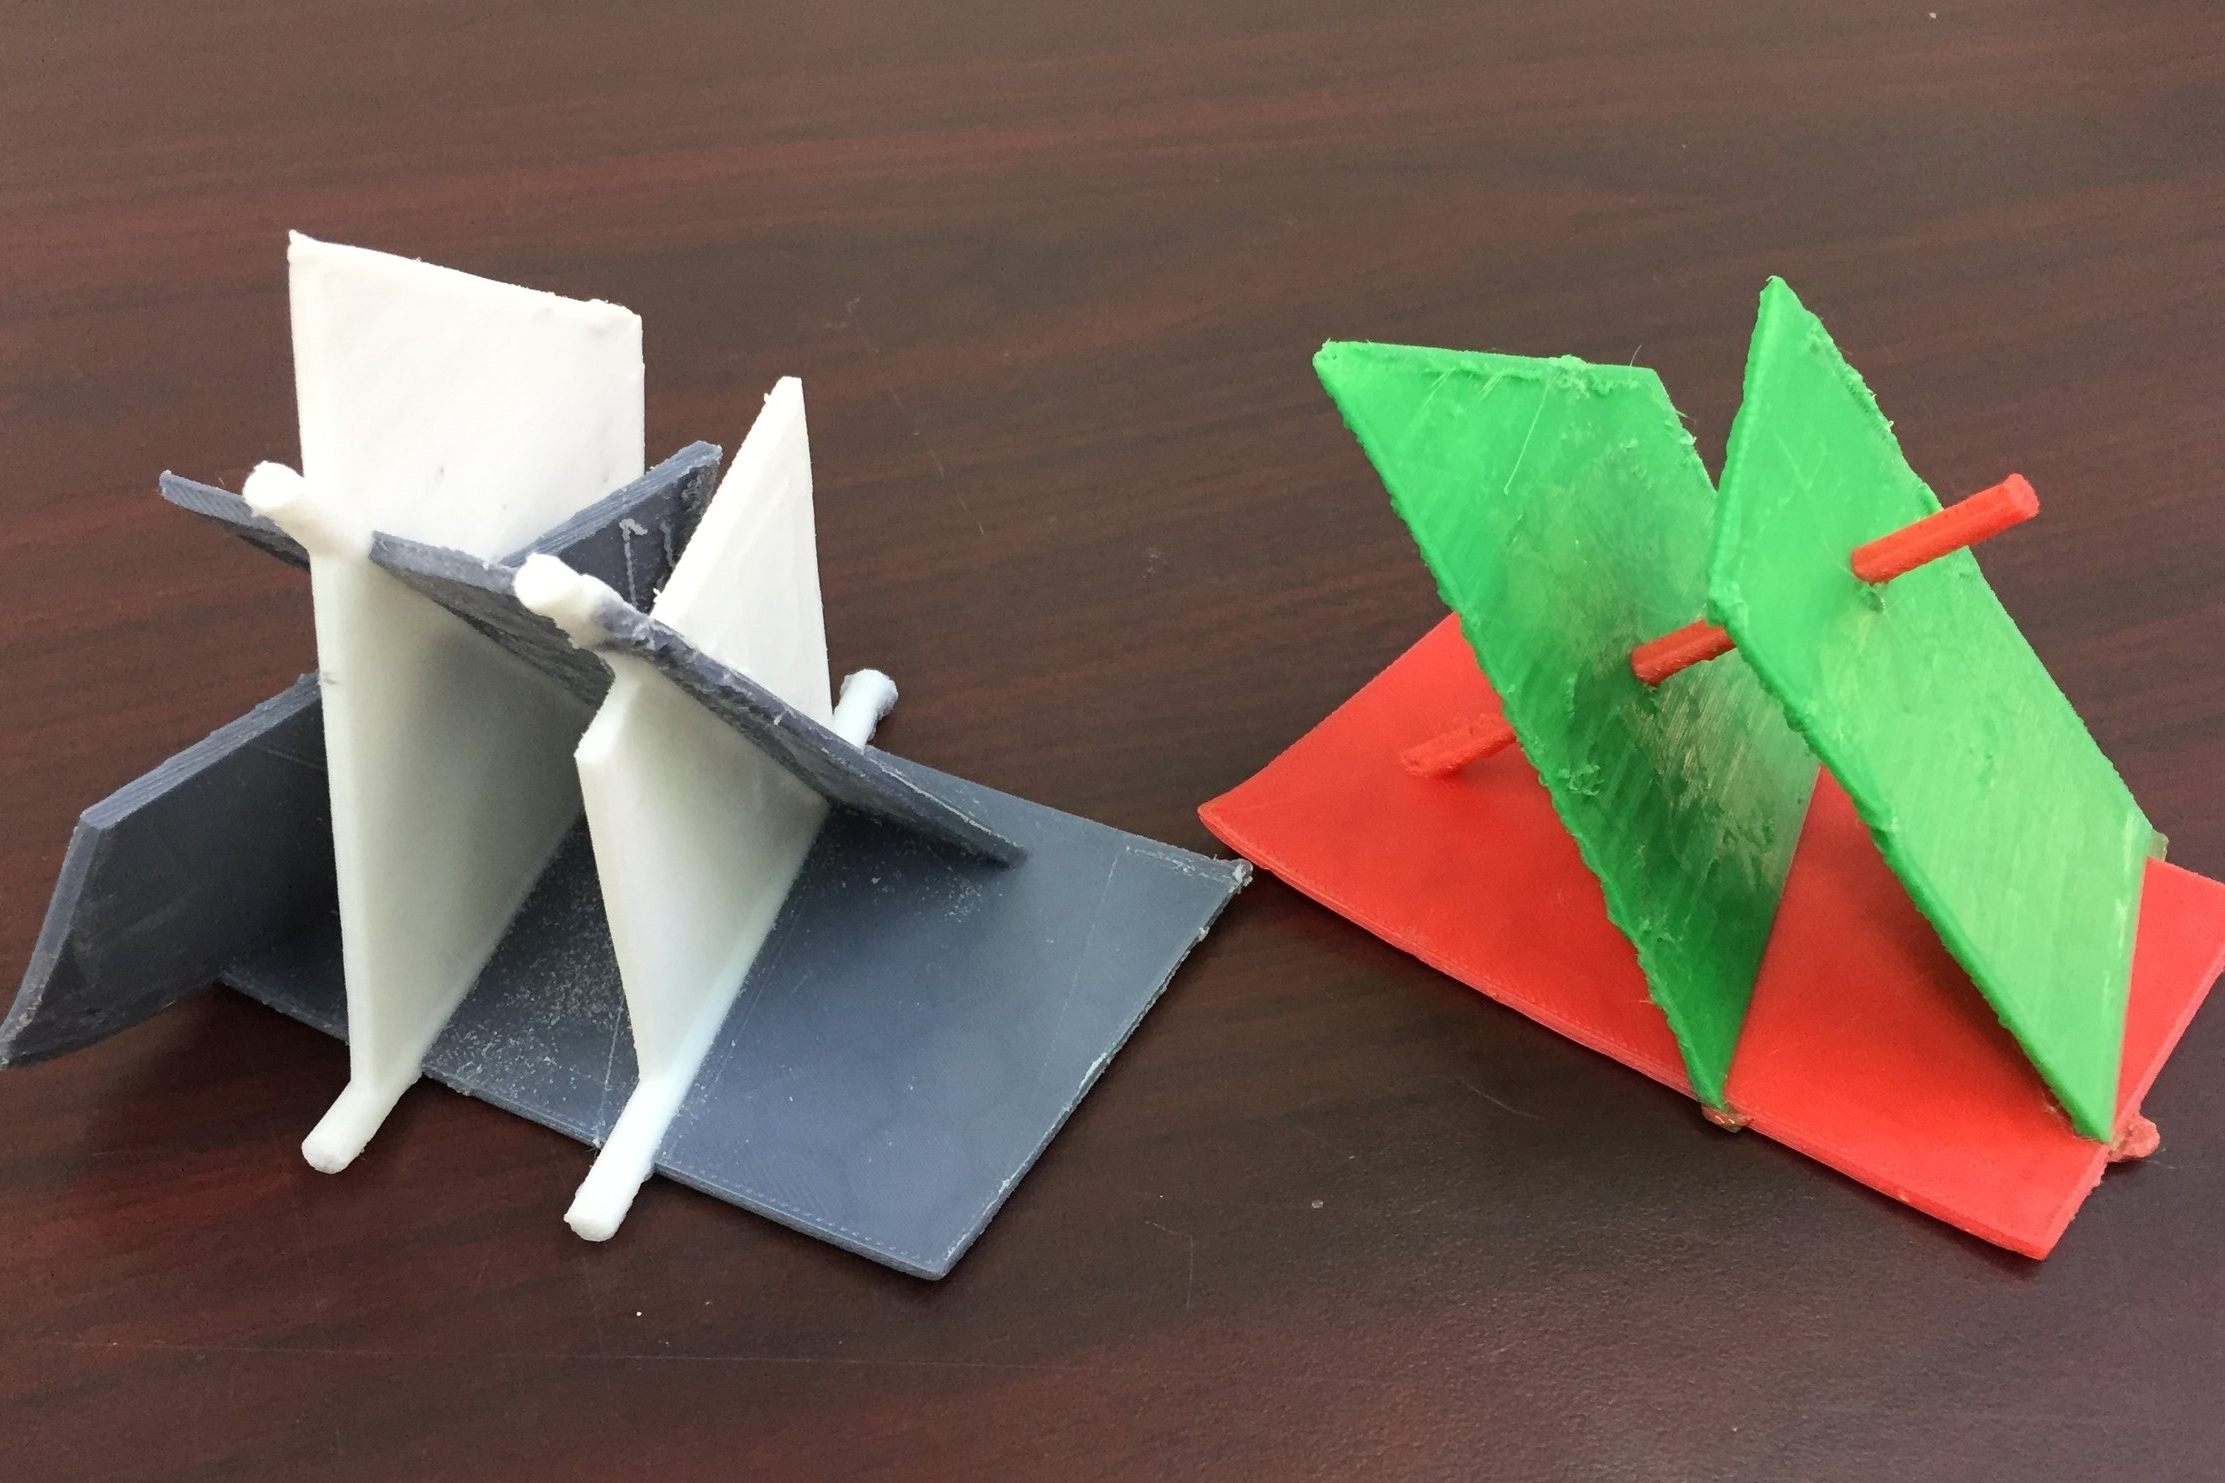 Intersections of parallel planes and two planes perpendicular to the same line. The model on the left was filed down. The one on the right has not been filed yet.